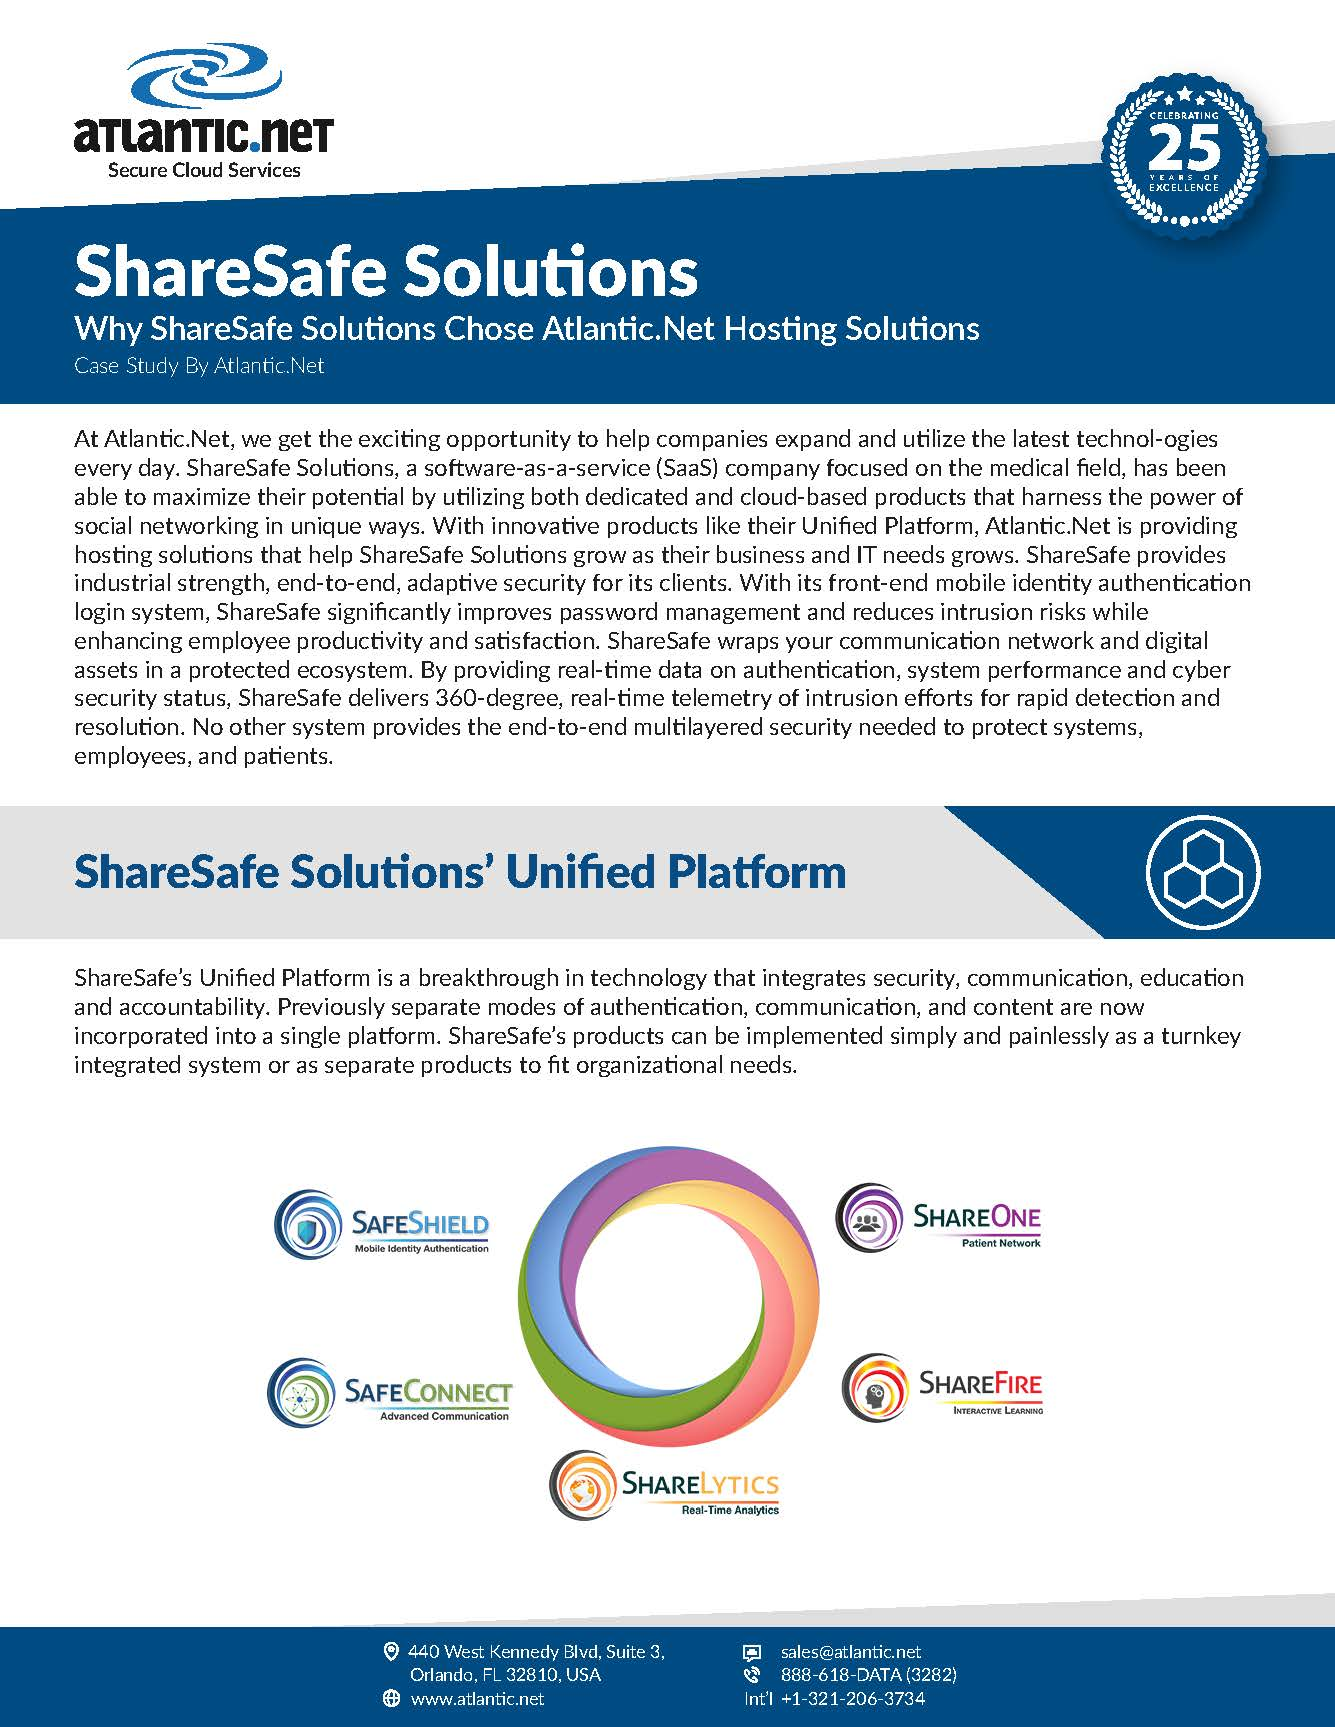 ShareSafe Solutions Chose Atlantic.Net